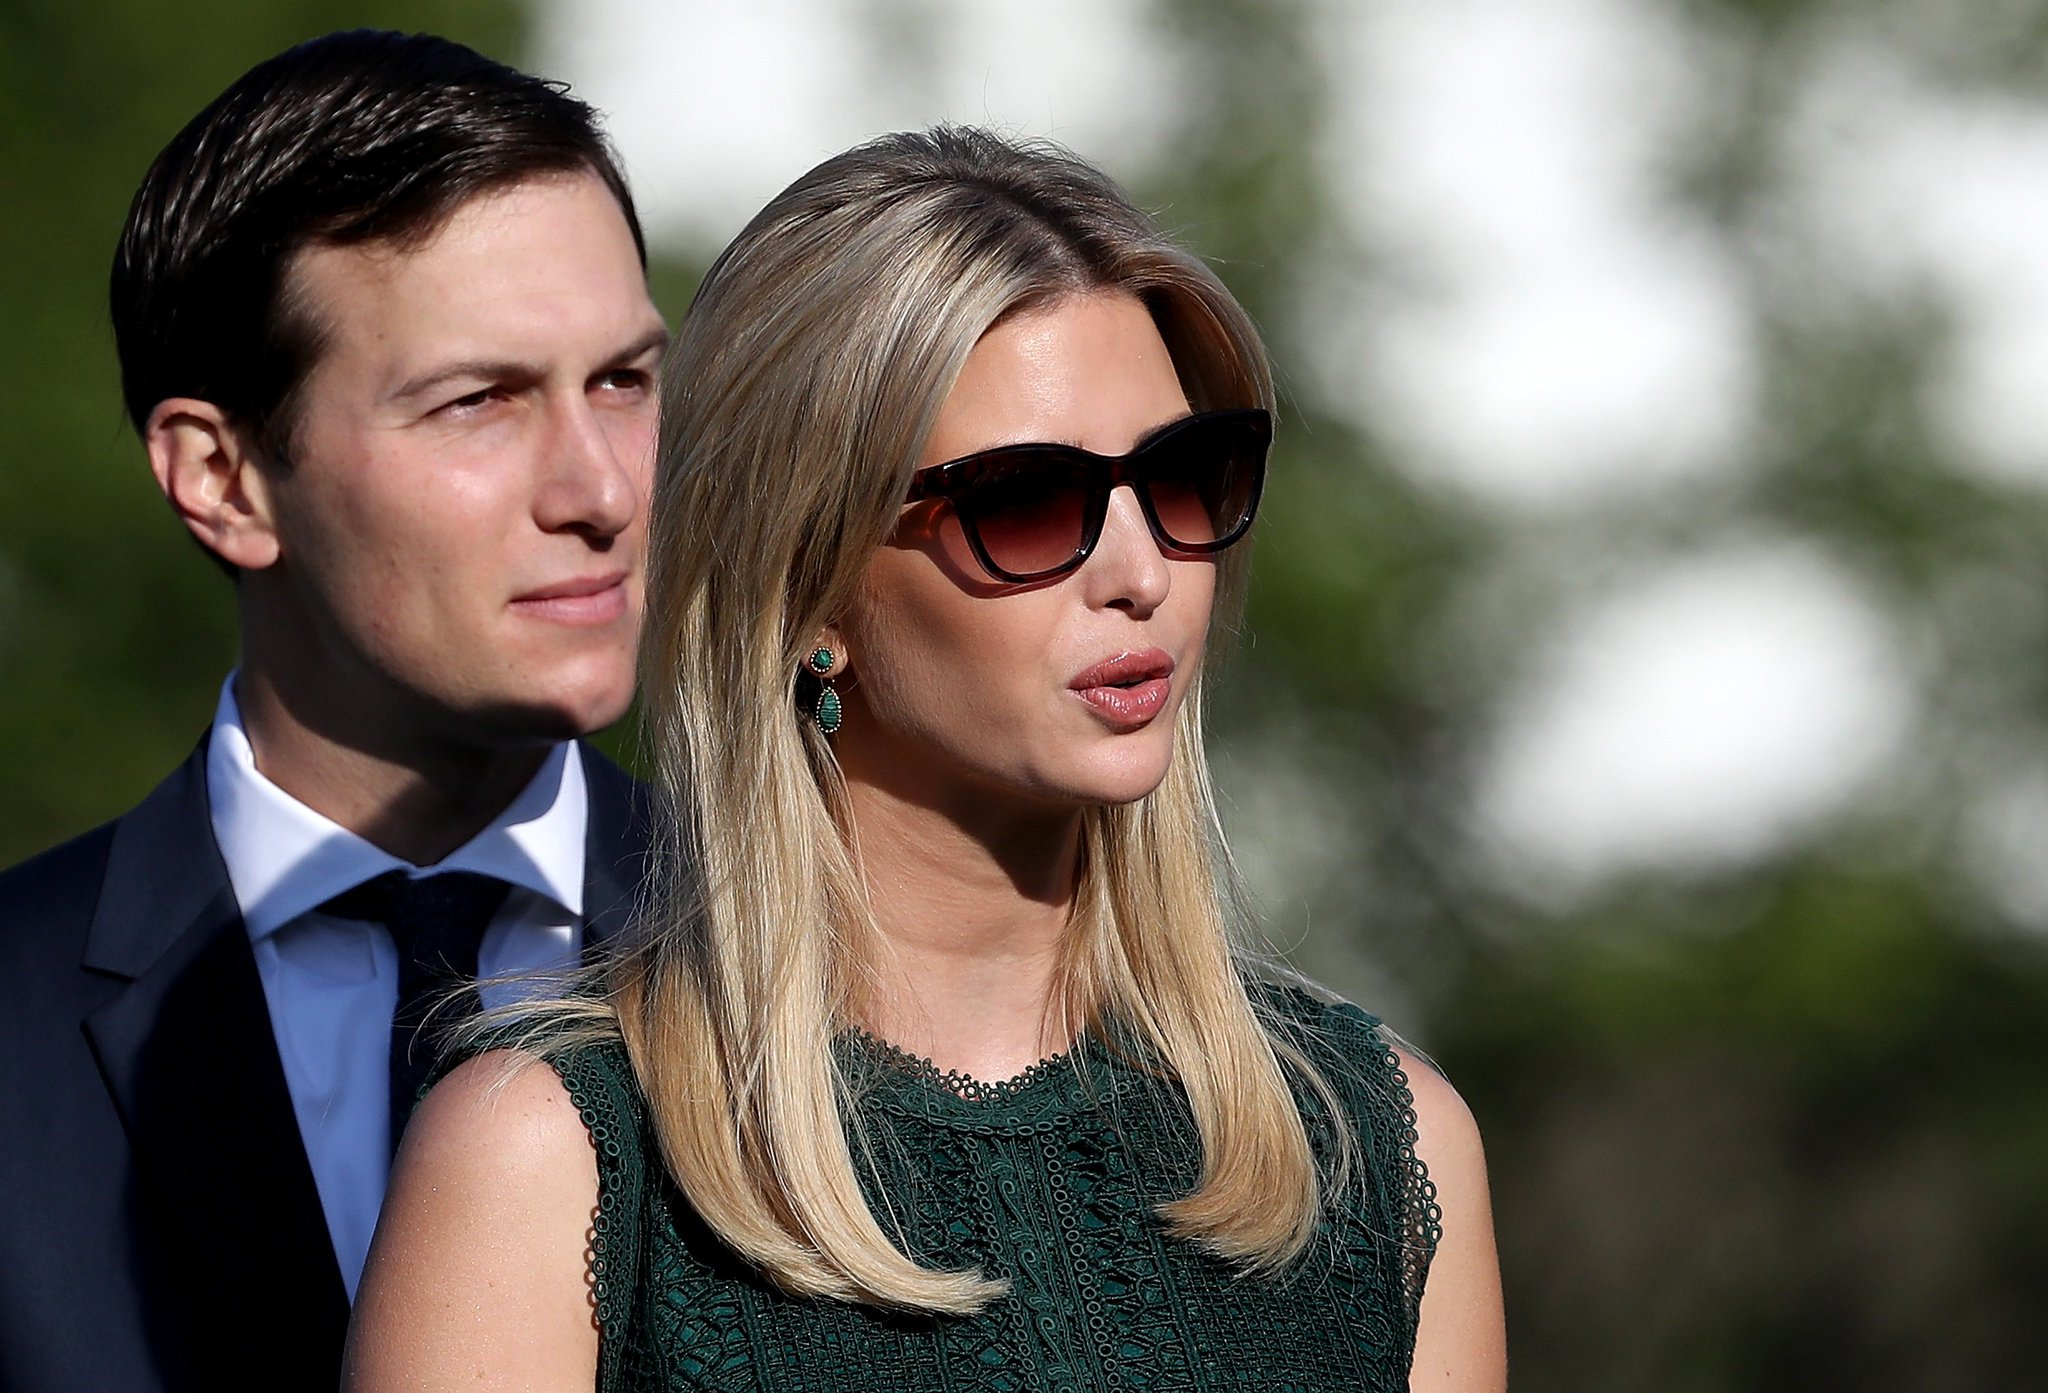 Exclusive: Ivanka Trump used a personal email account after inauguration https://t.co/yBSuHVv3fm https://t.co/6SBvX5pUWS